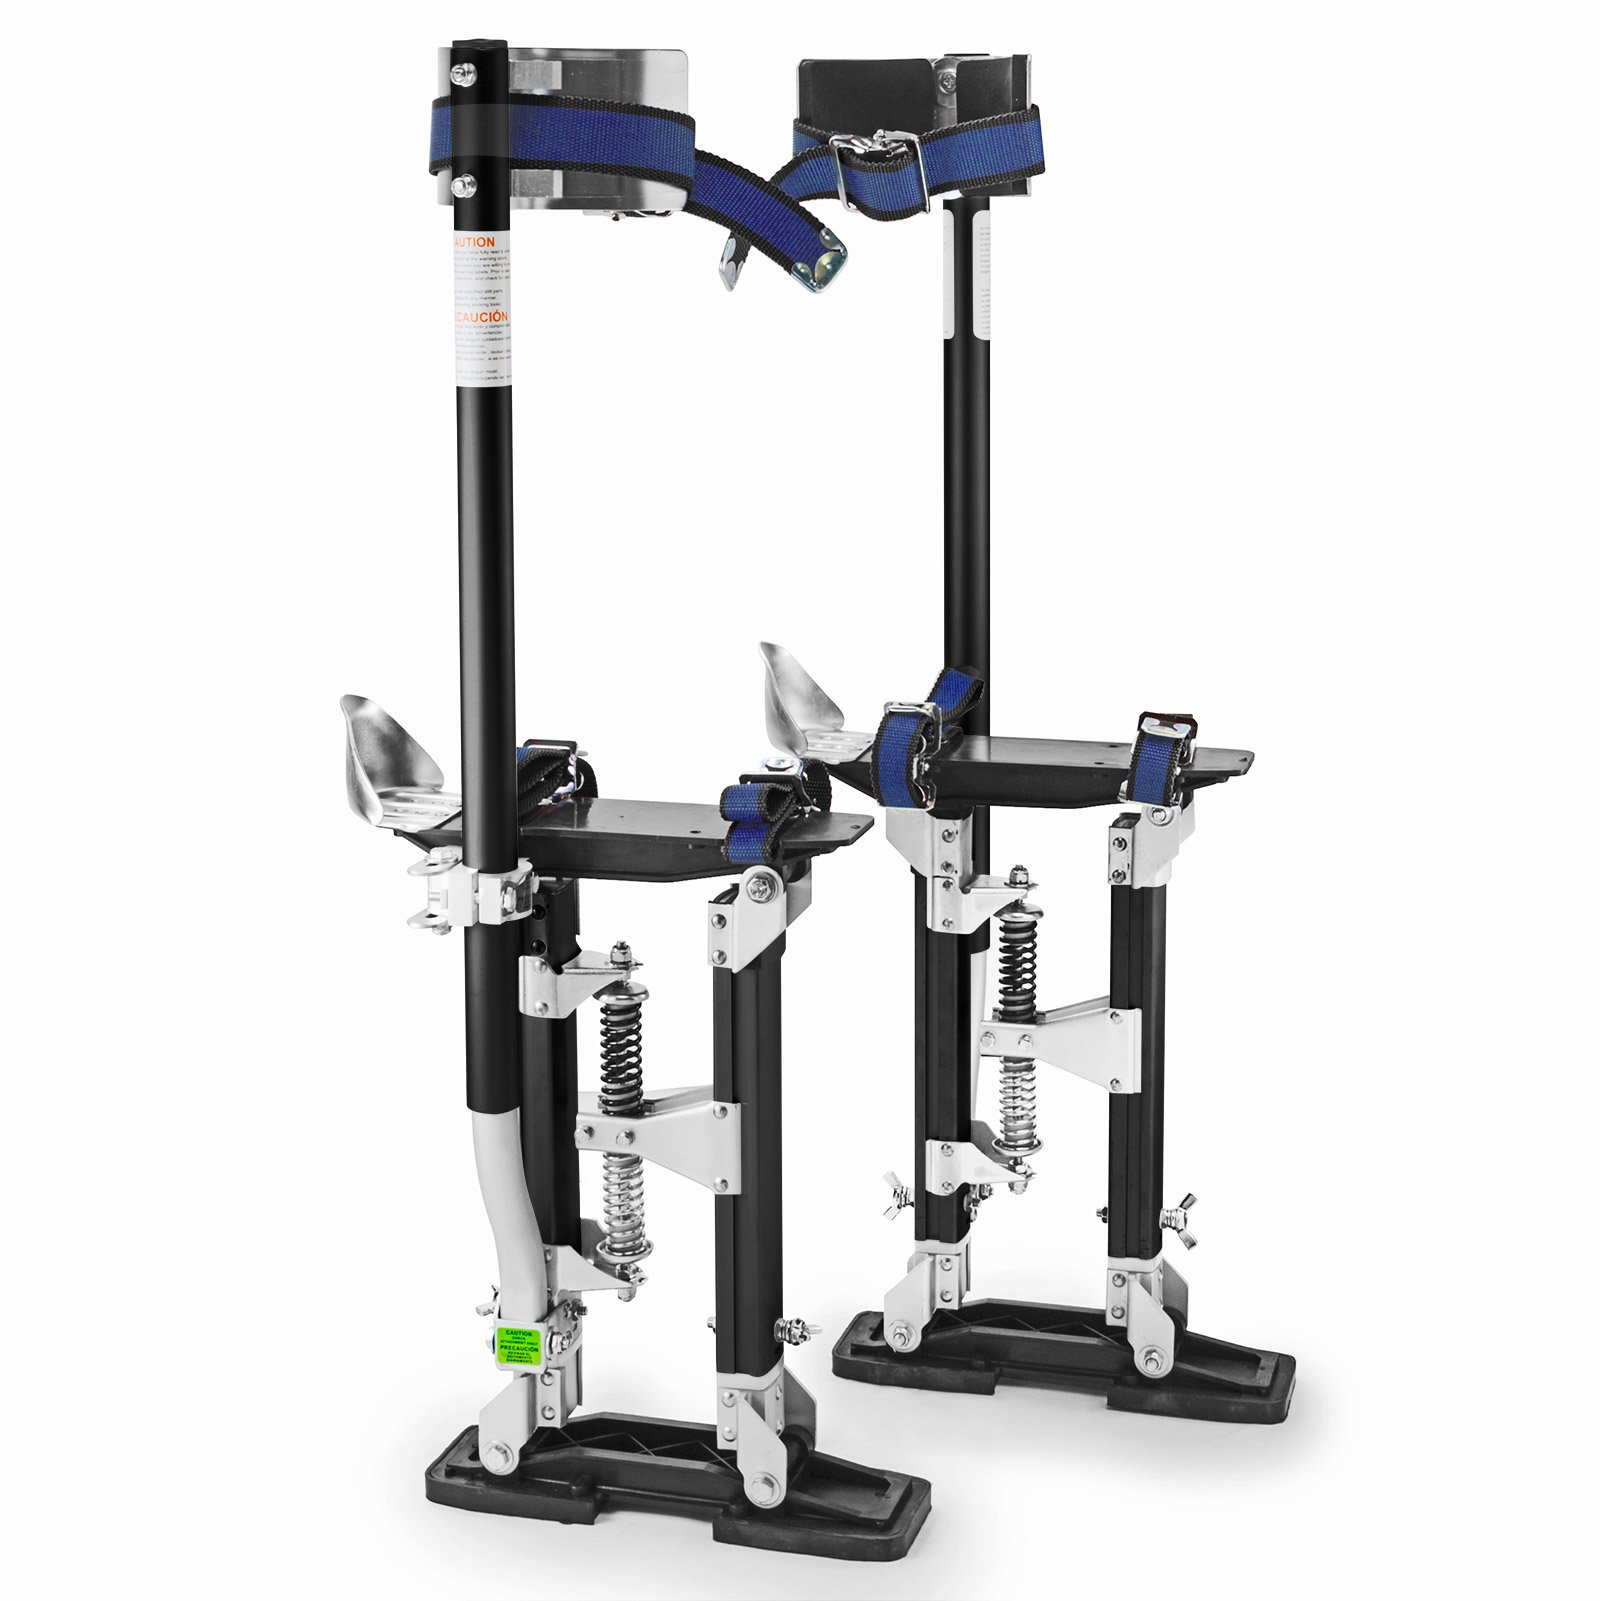 GypTool Pro 24'' - 40'' Drywall Stilts - Black by GypTool